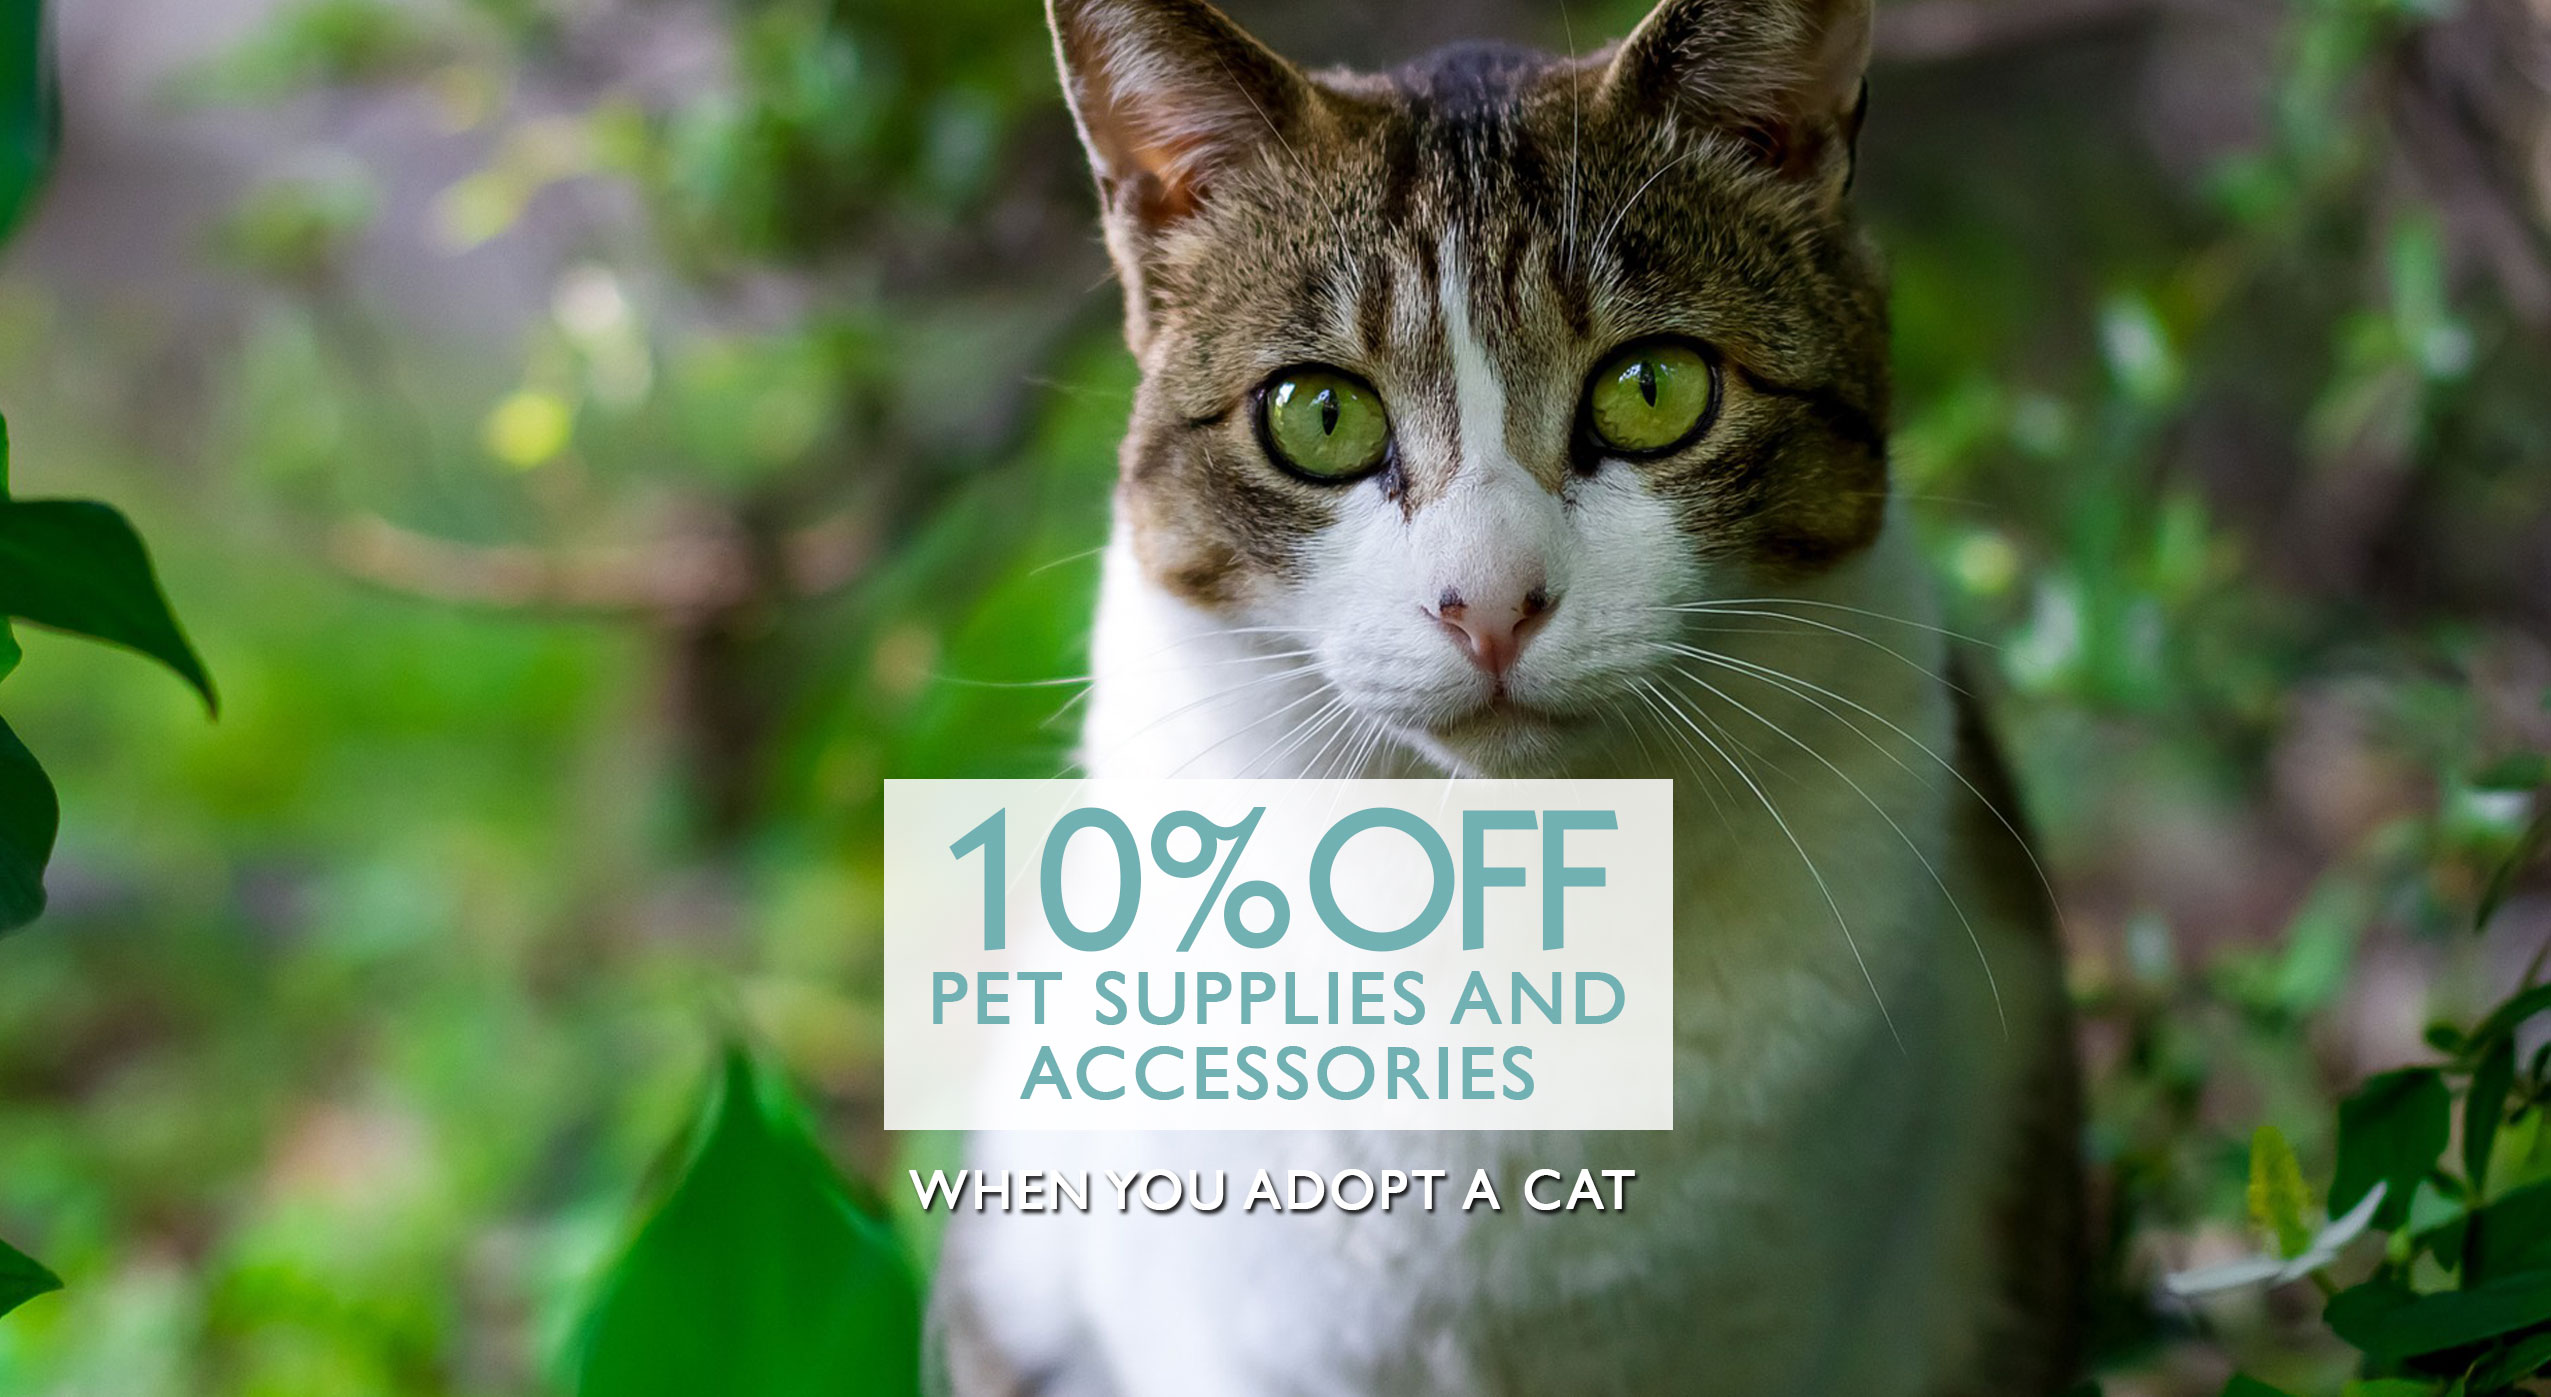 Adopt a Cat and Receive 10% off any Pet Supplies and Accessories